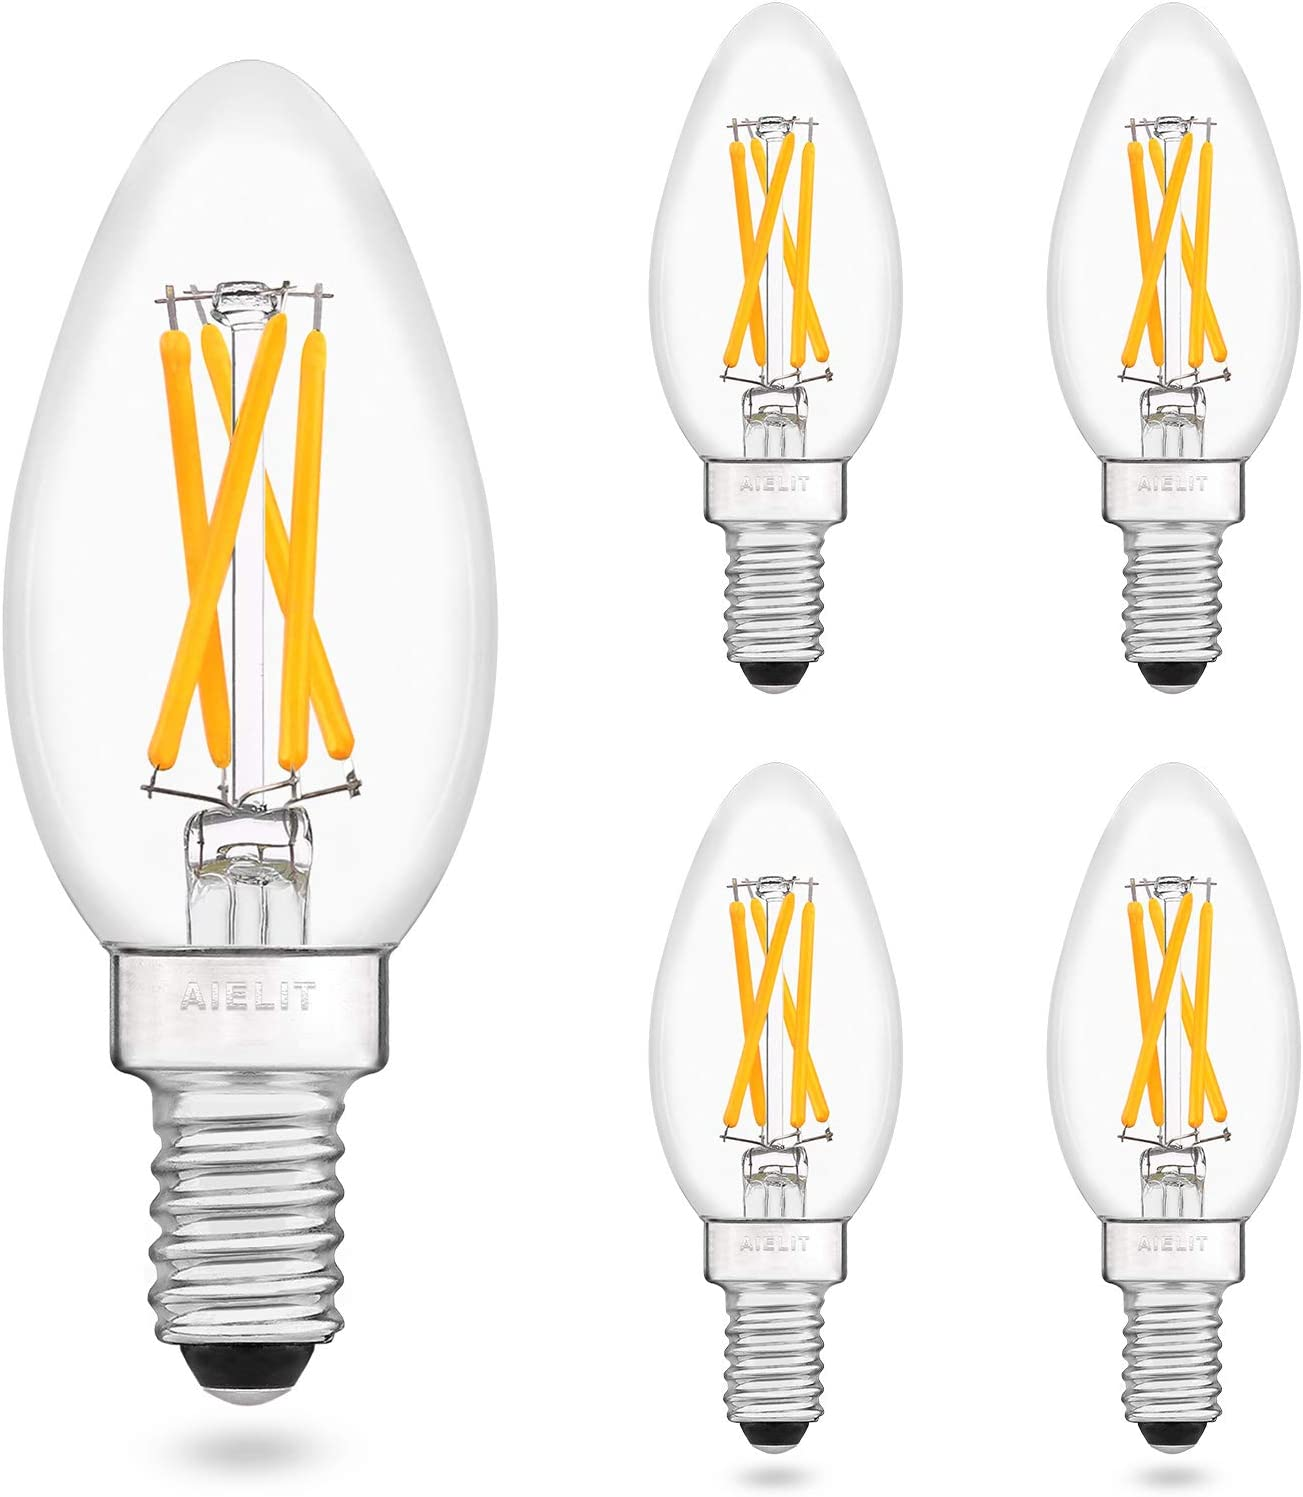 Led Candelabra Bulbs 40 Watt Equivalent Warm White 2700k Dimmable E12 Light Bulb 400 Lumens Clear Glass Aielit 4w B11 Candle Edison Led Filament Bulb For Home Decoration 4 Pack